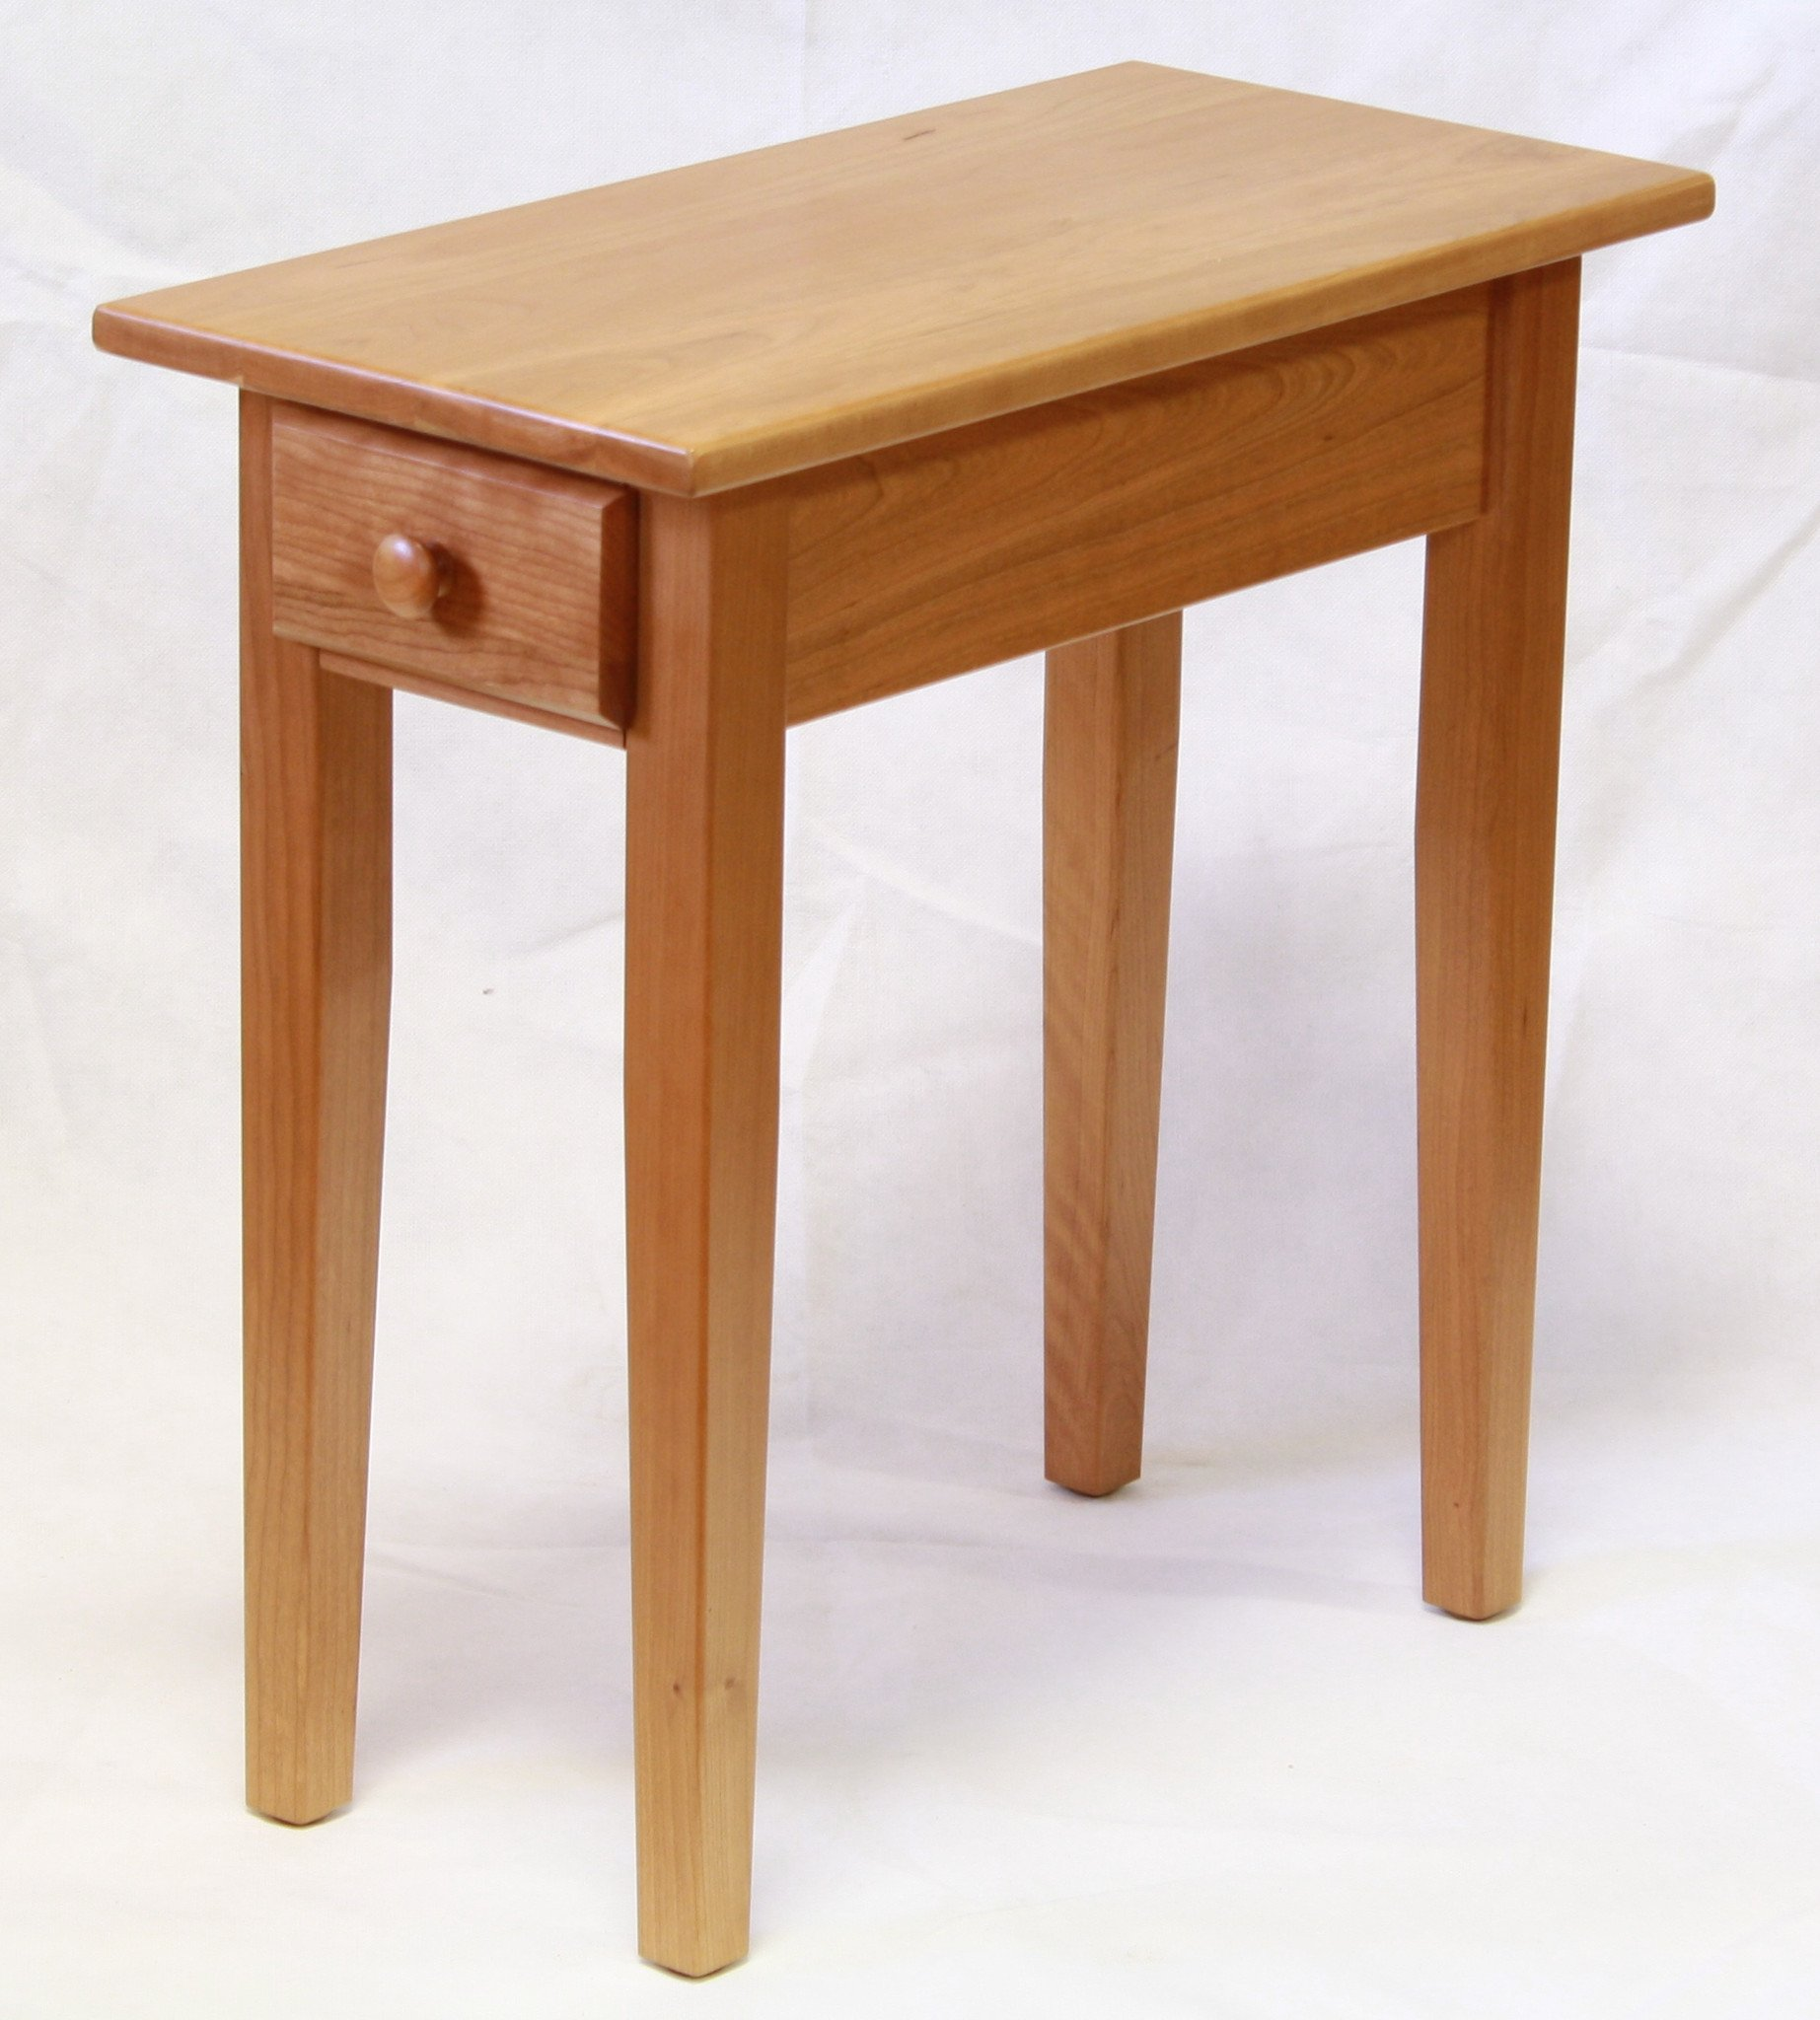 narrow cherry shaker chairside end table with drawer for smaller dimensions occasional tables endicott home furnishings quality living room furniture small bedside budget inch